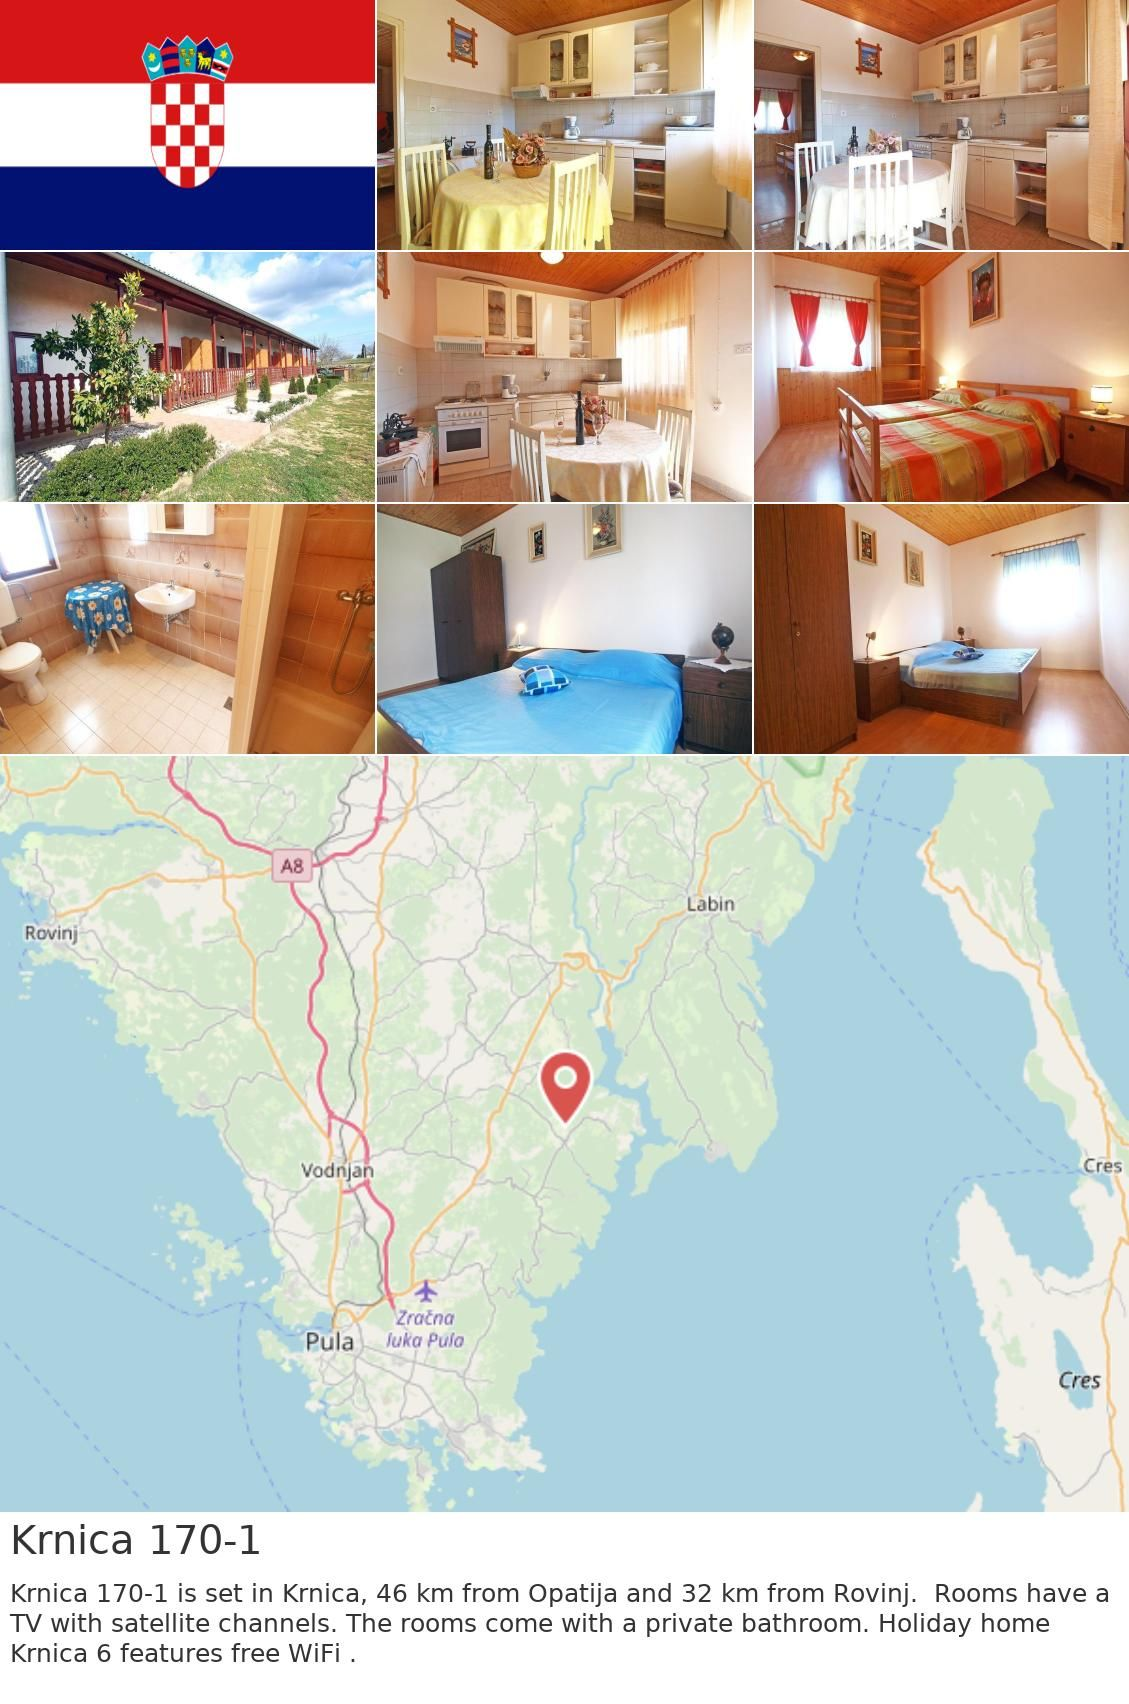 Europe Croatia Krnica Krnica 170 1 Krnica 170 1 Is Set In Krnica 46 Km From Opatija And 32 Km From Rovinj Rooms Have A Tv With Satell Croatia